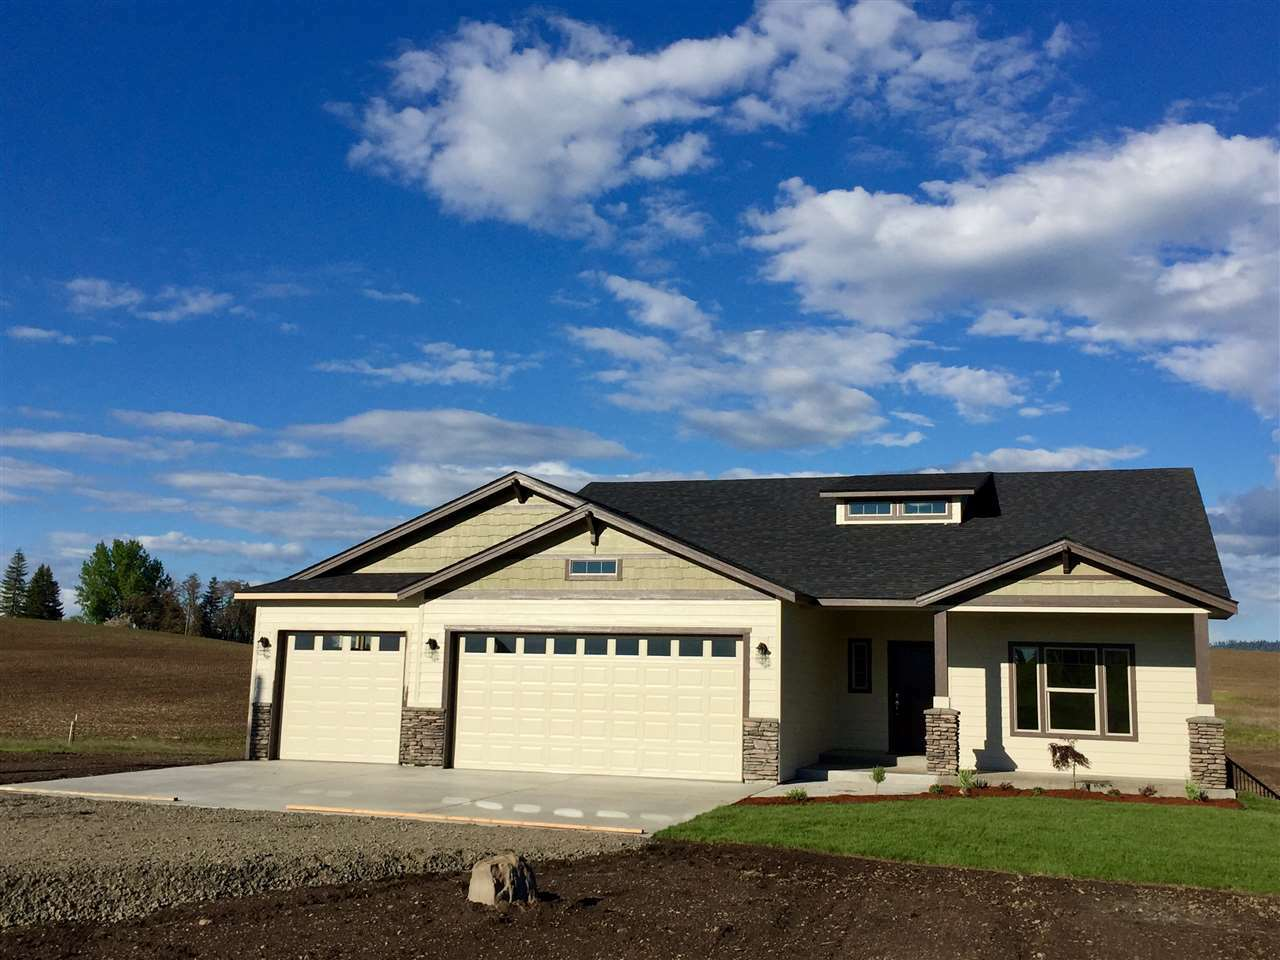 14309 S Madison Rd, Valleyford, WA - USA (photo 1)